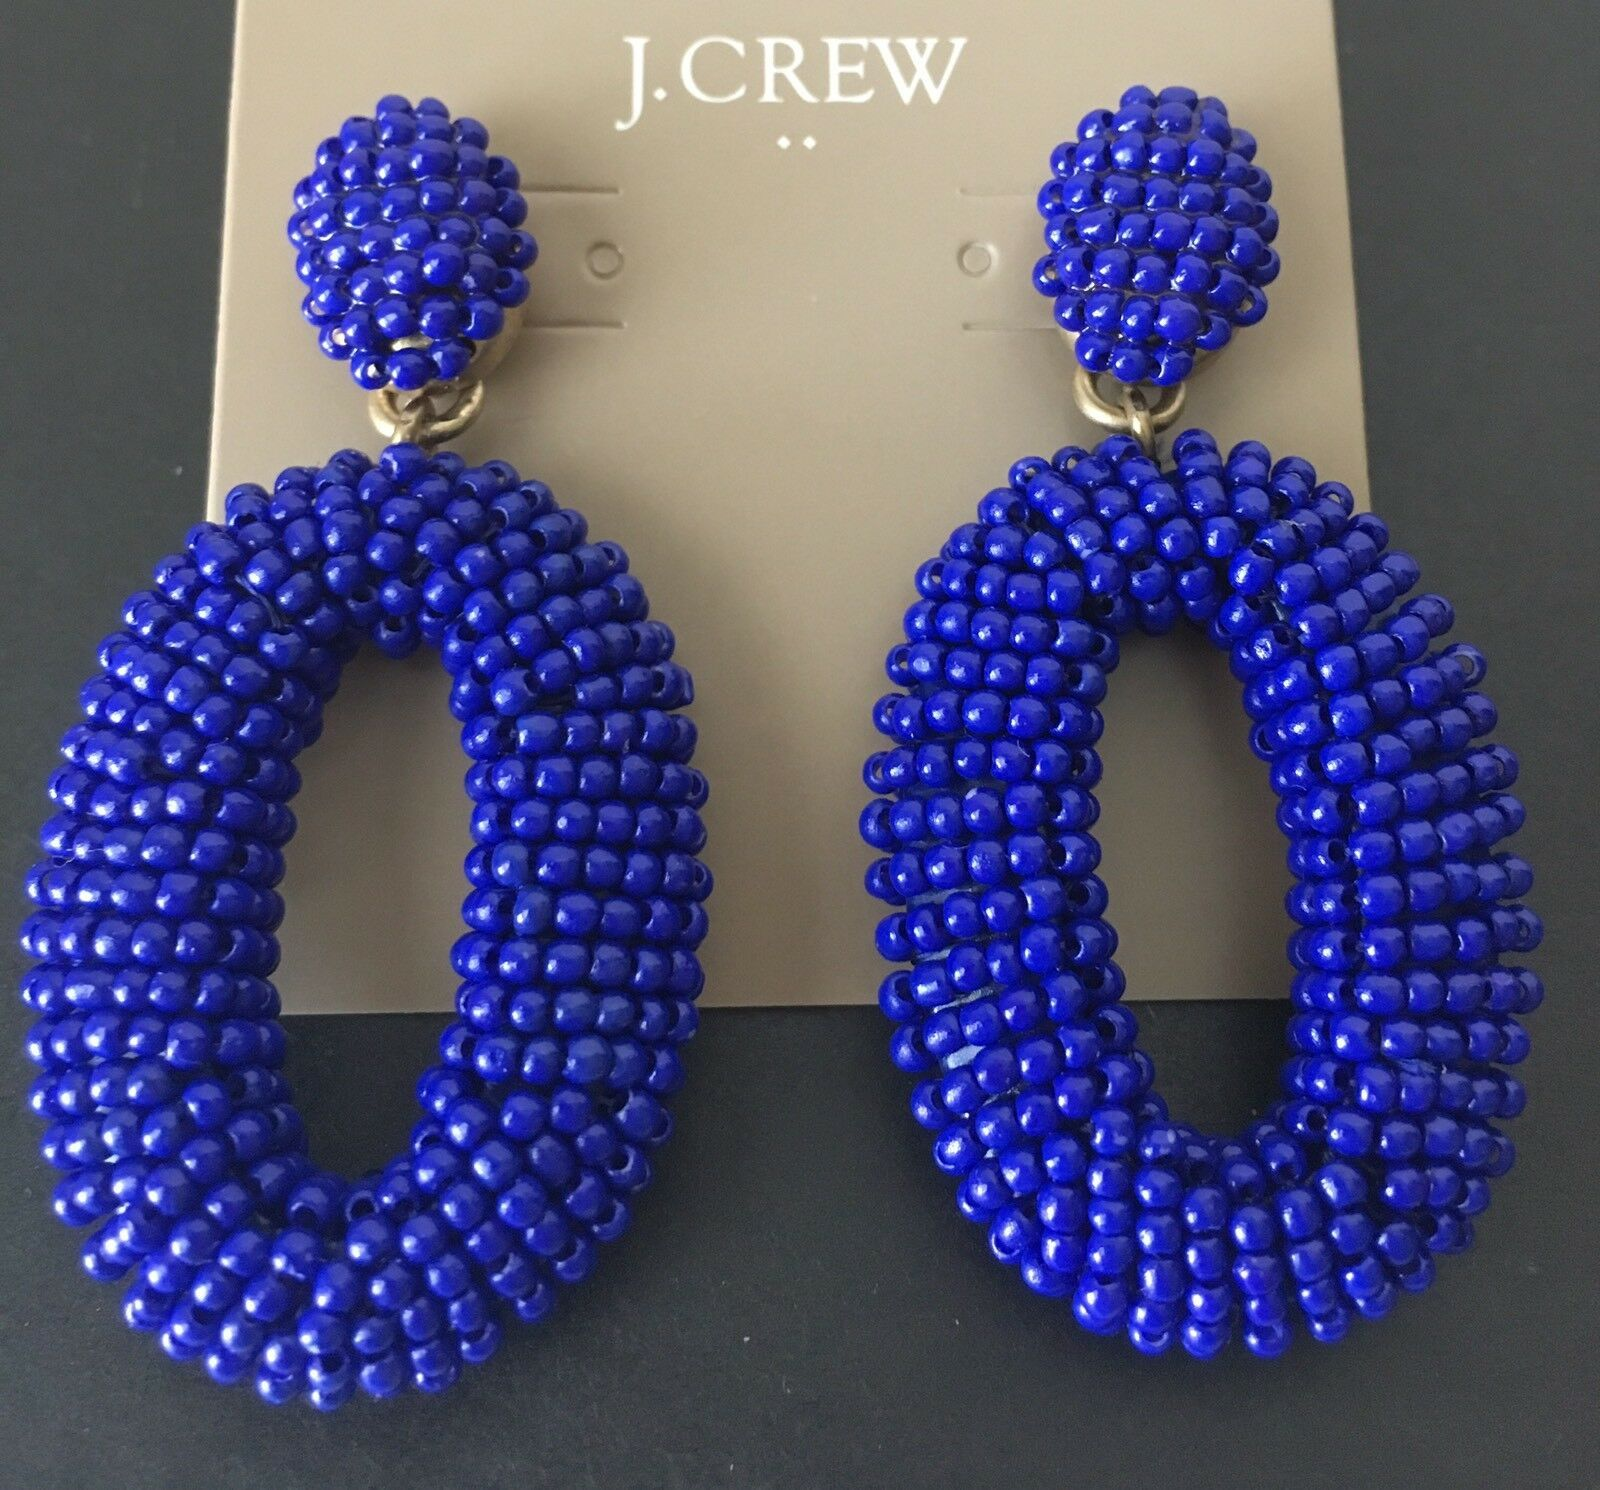 Primary image for NWT J Crew Beaded oval dangle statement earrings In Cobalt